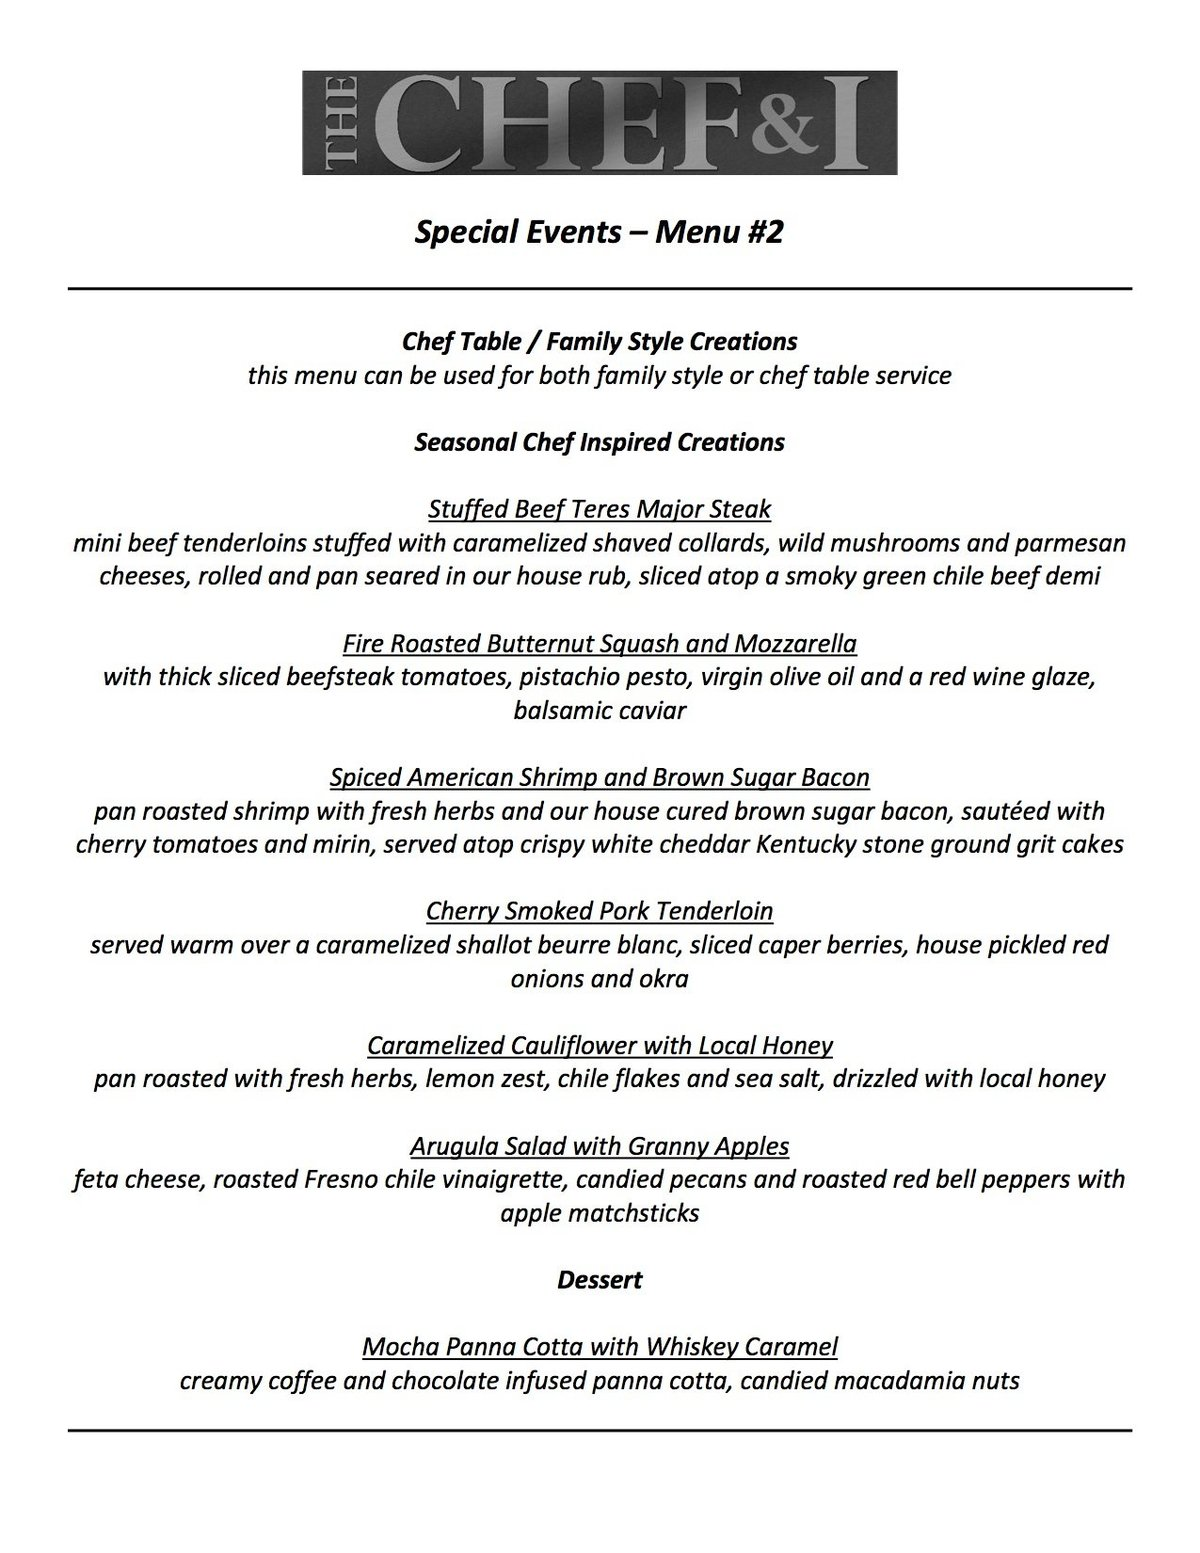 Special Events Menu 2